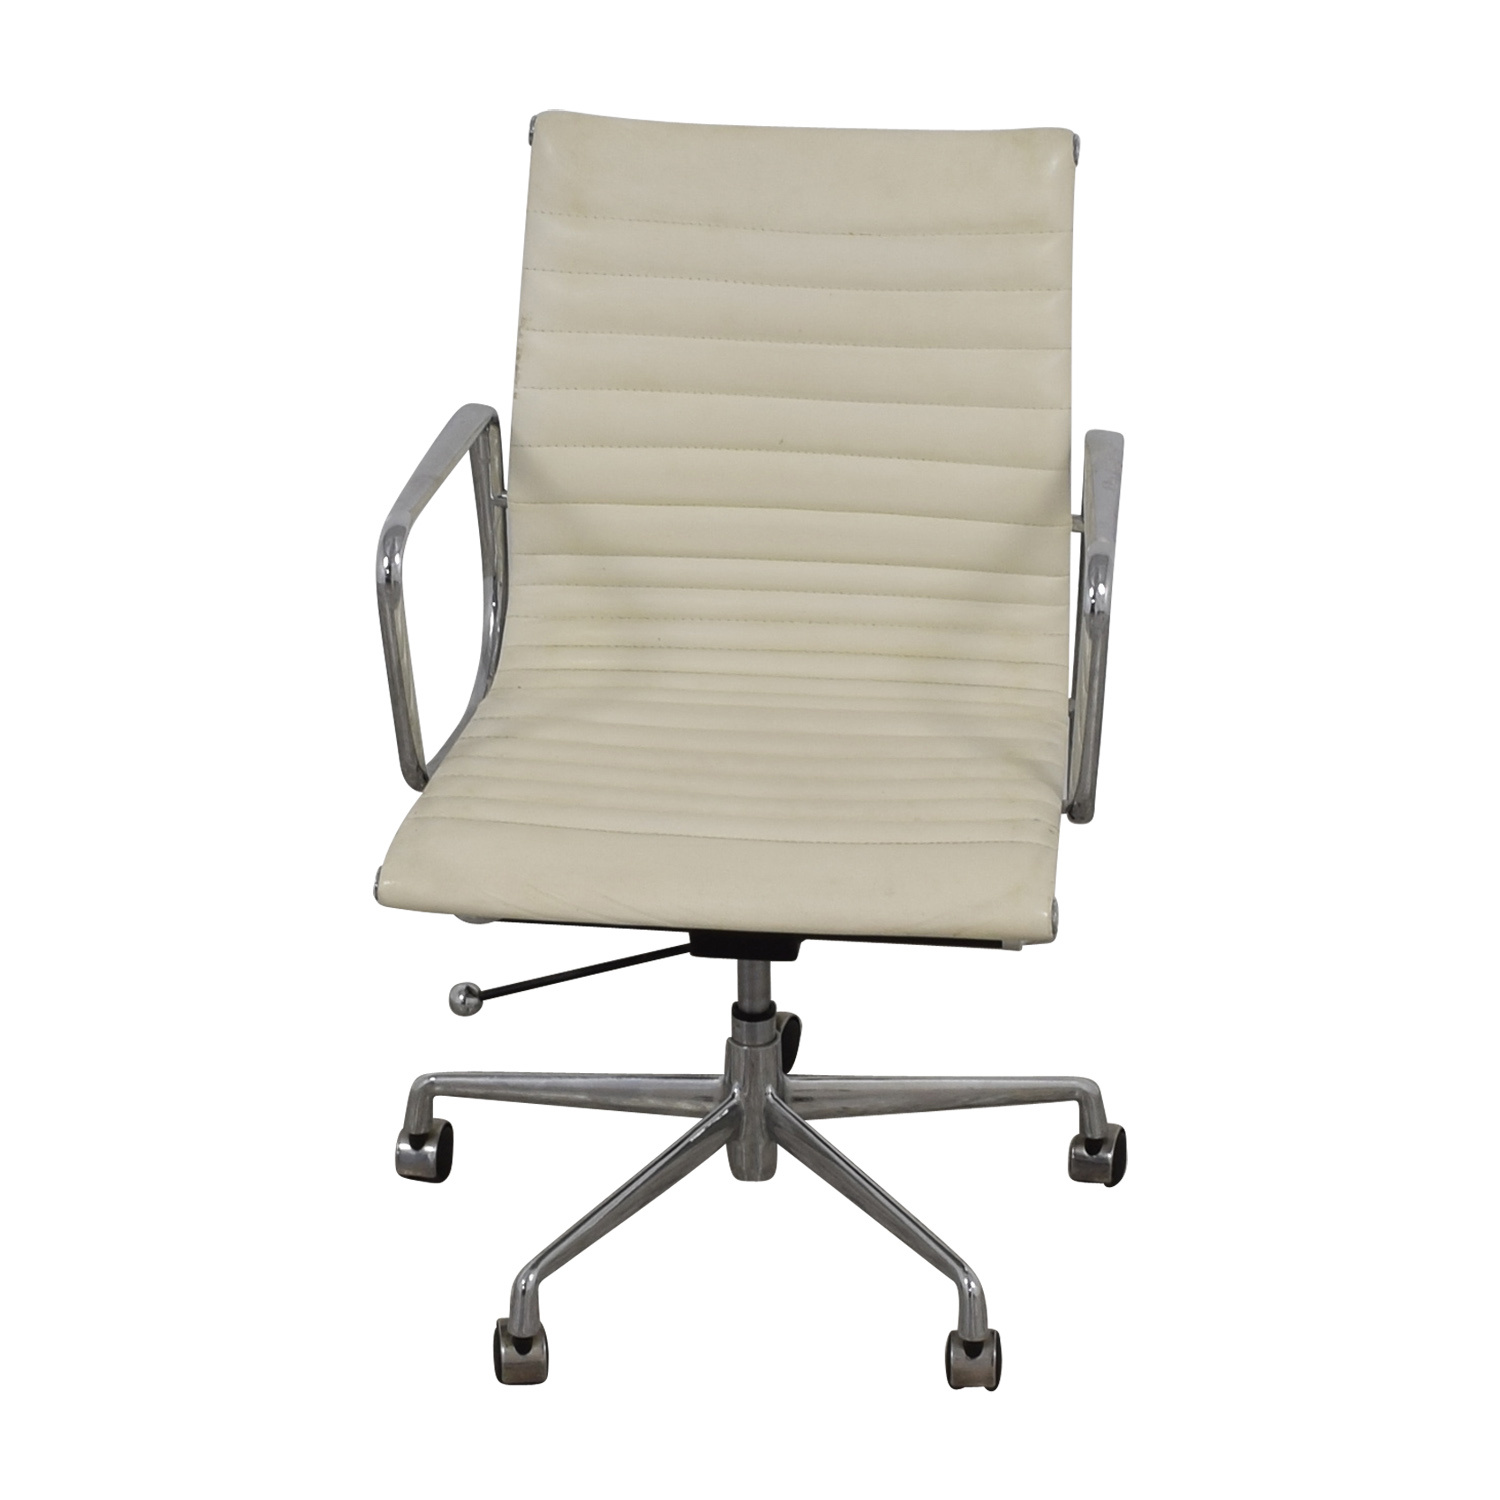 off white office chair. White Office Chair Sale Off White Office Chair T